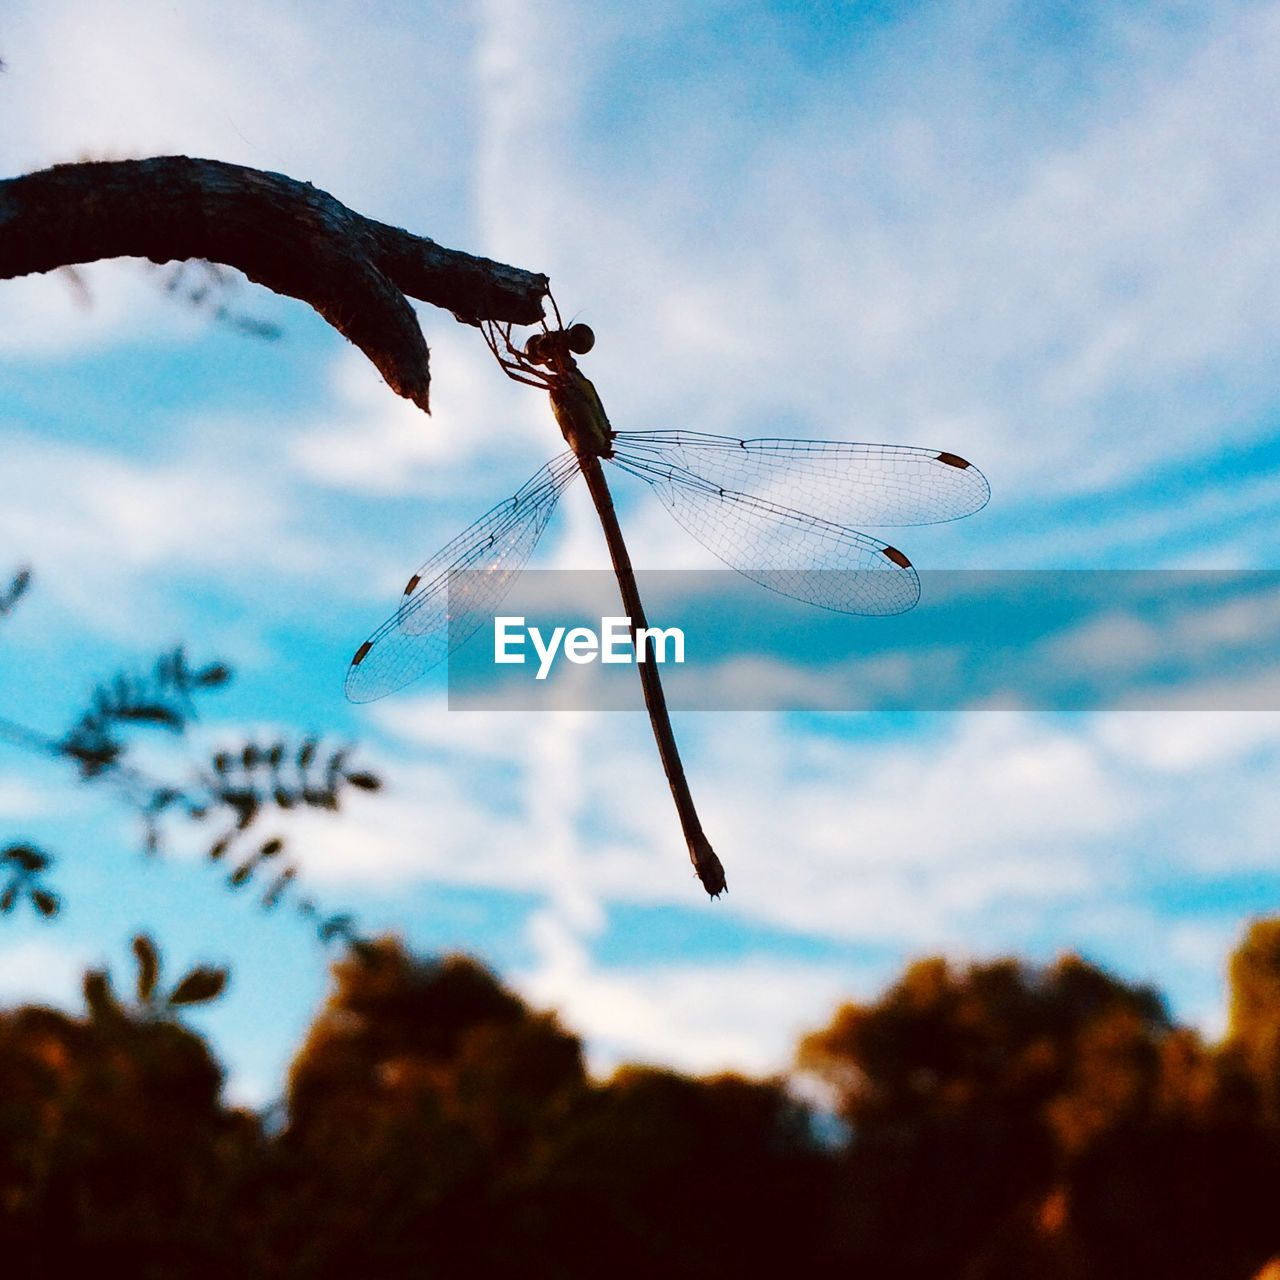 sky, cloud - sky, animals in the wild, focus on foreground, close-up, nature, animal, animal wildlife, animal themes, insect, invertebrate, no people, day, plant, animal wing, one animal, outdoors, beauty in nature, dragonfly, low angle view